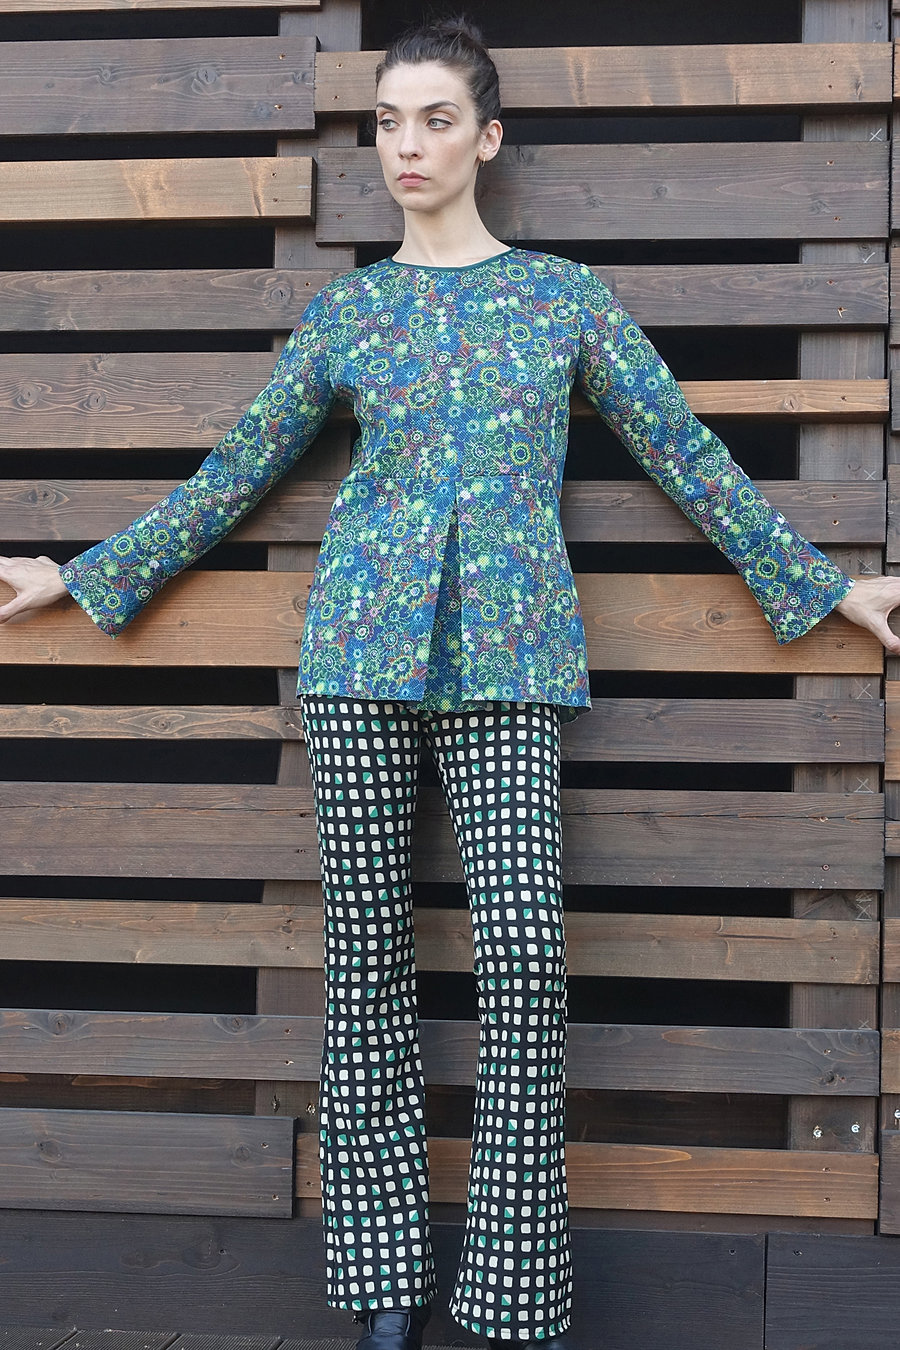 Optical printed neoprene blouse and checks printed trousers. 60's Style.